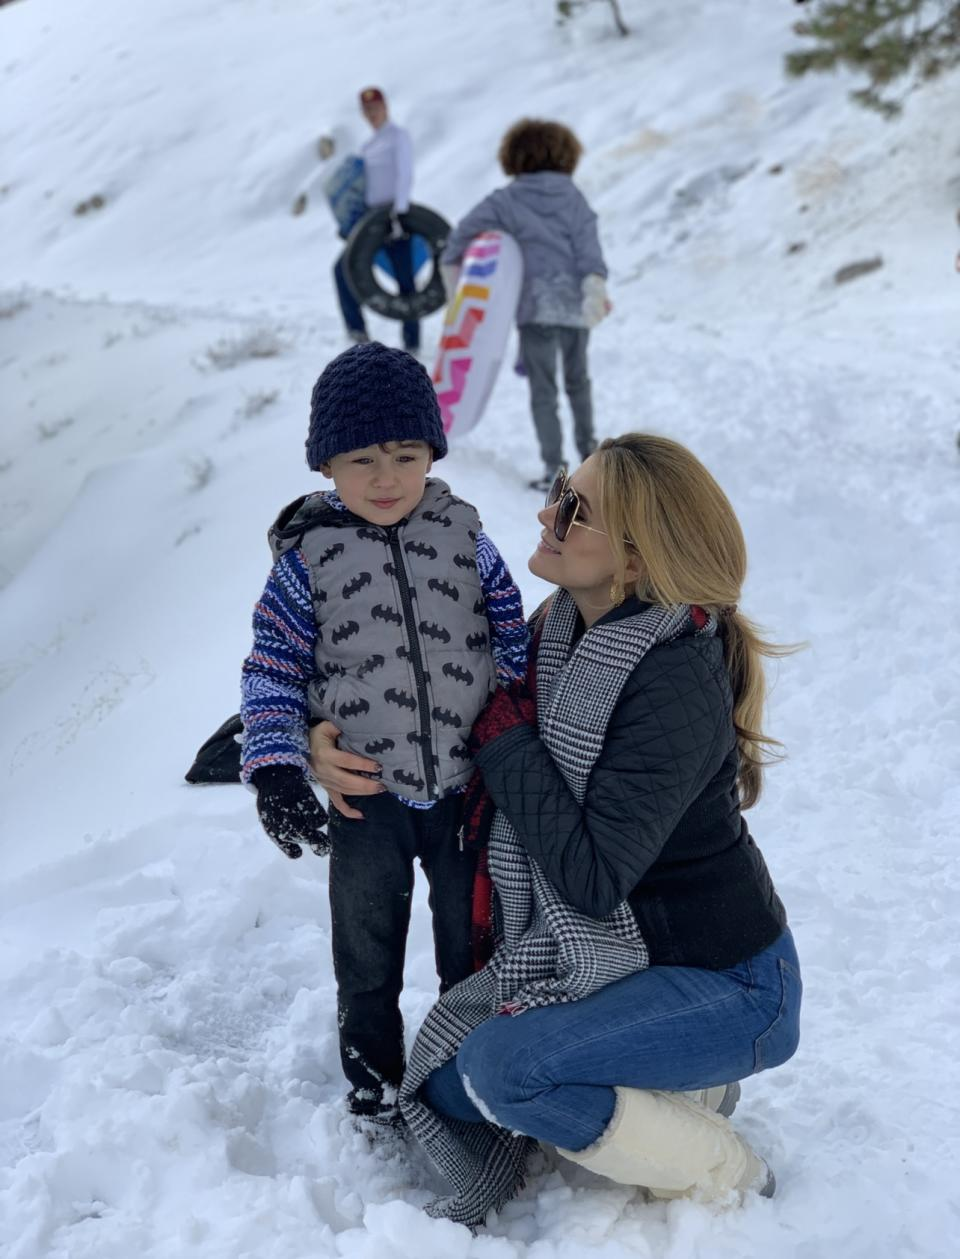 Kristen with son at Christmas snow